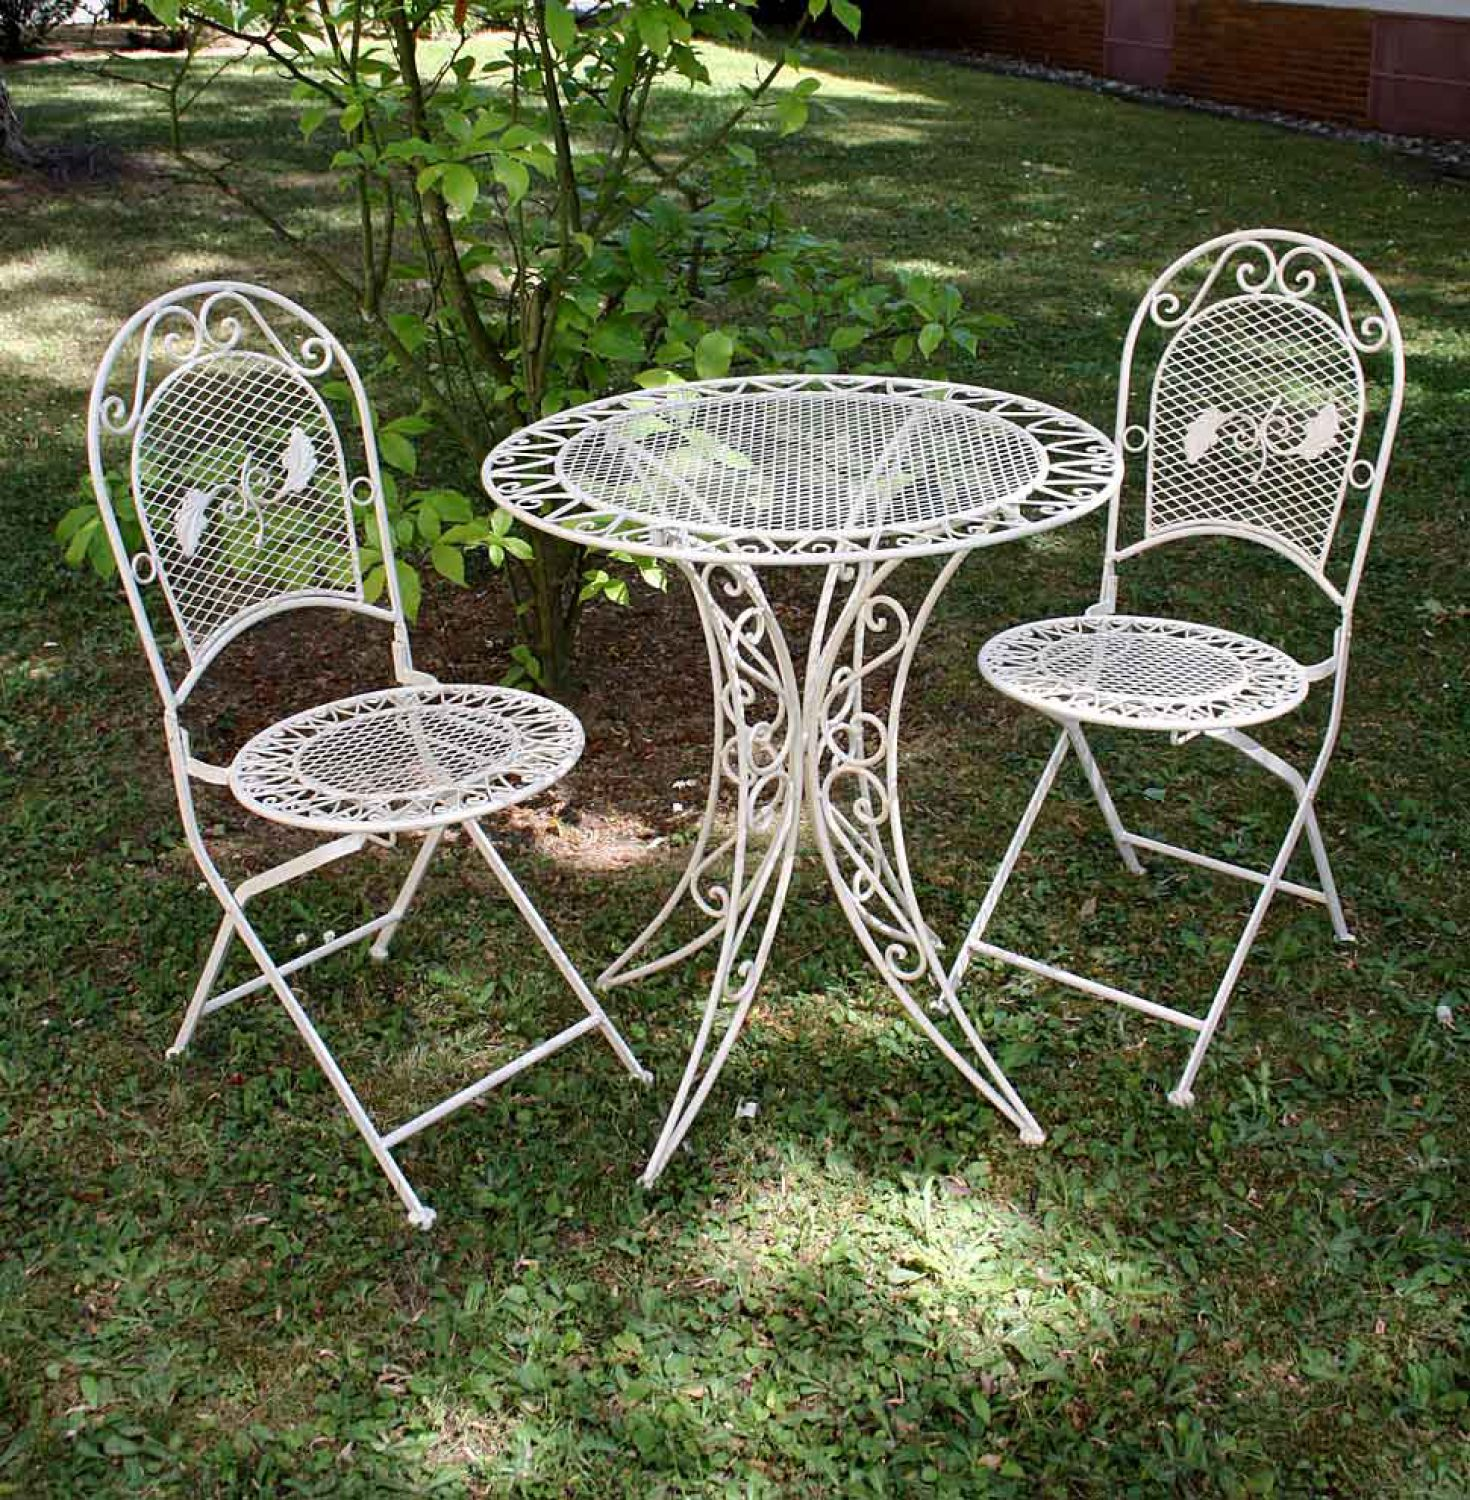 Outdoor Iron Table And Chair Set: Vintage Garden Furniture Set